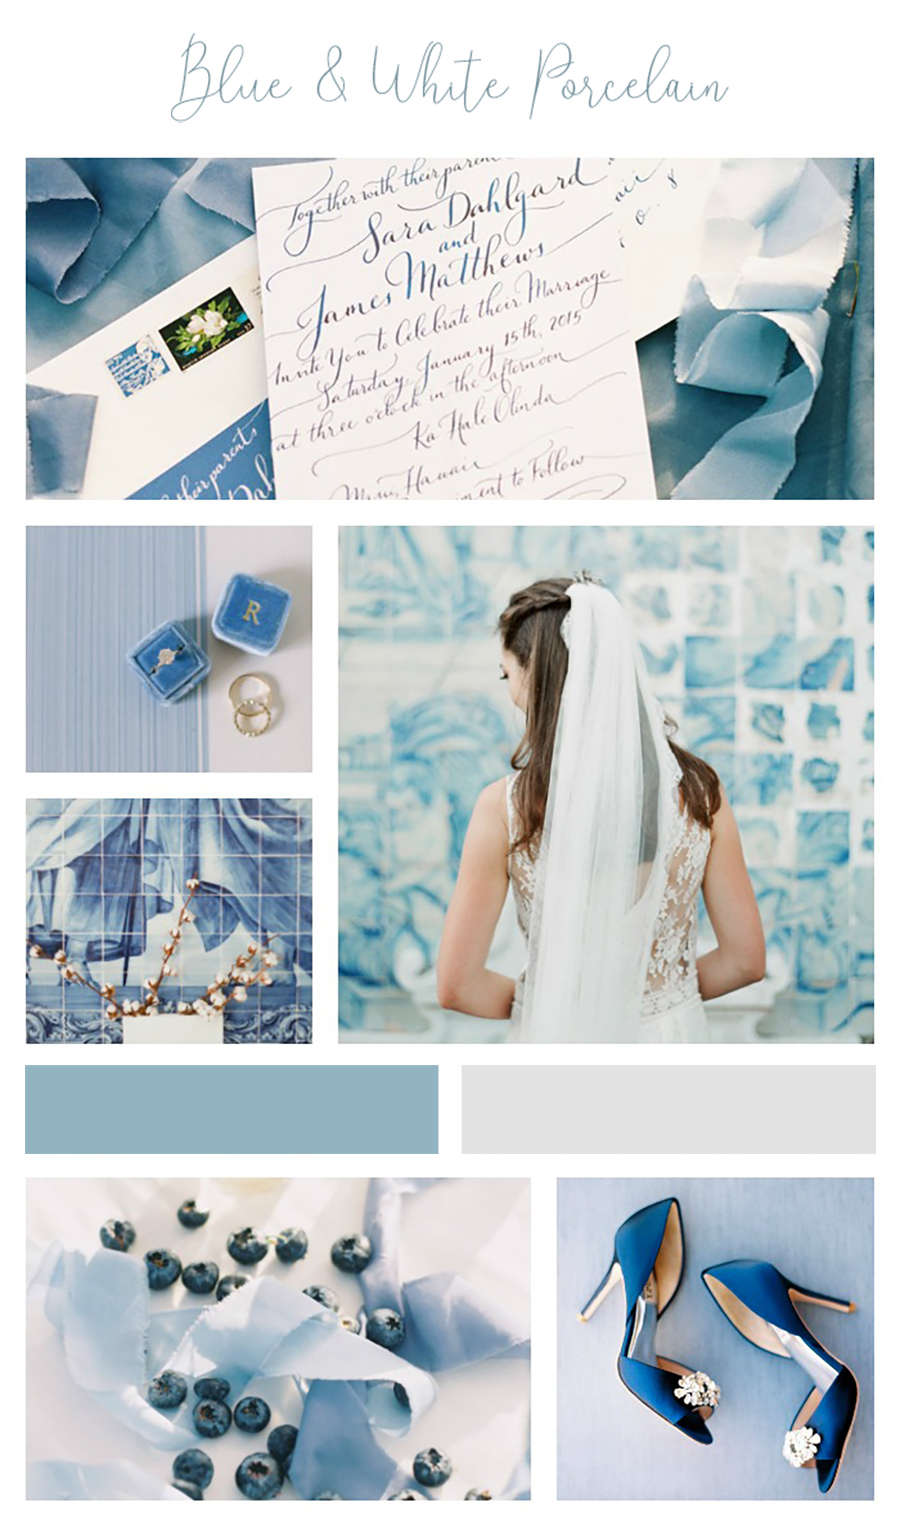 Wedding inspiration boards have had a little break of late, while I have been busy shooting. But I am dead excited to get back to it, with some seriously summery blue and white inspiration. This UK Summer might be one of the longest and hottest I can remember in years, so I wanted to work on something which felt as European and sun drenched as this weather.